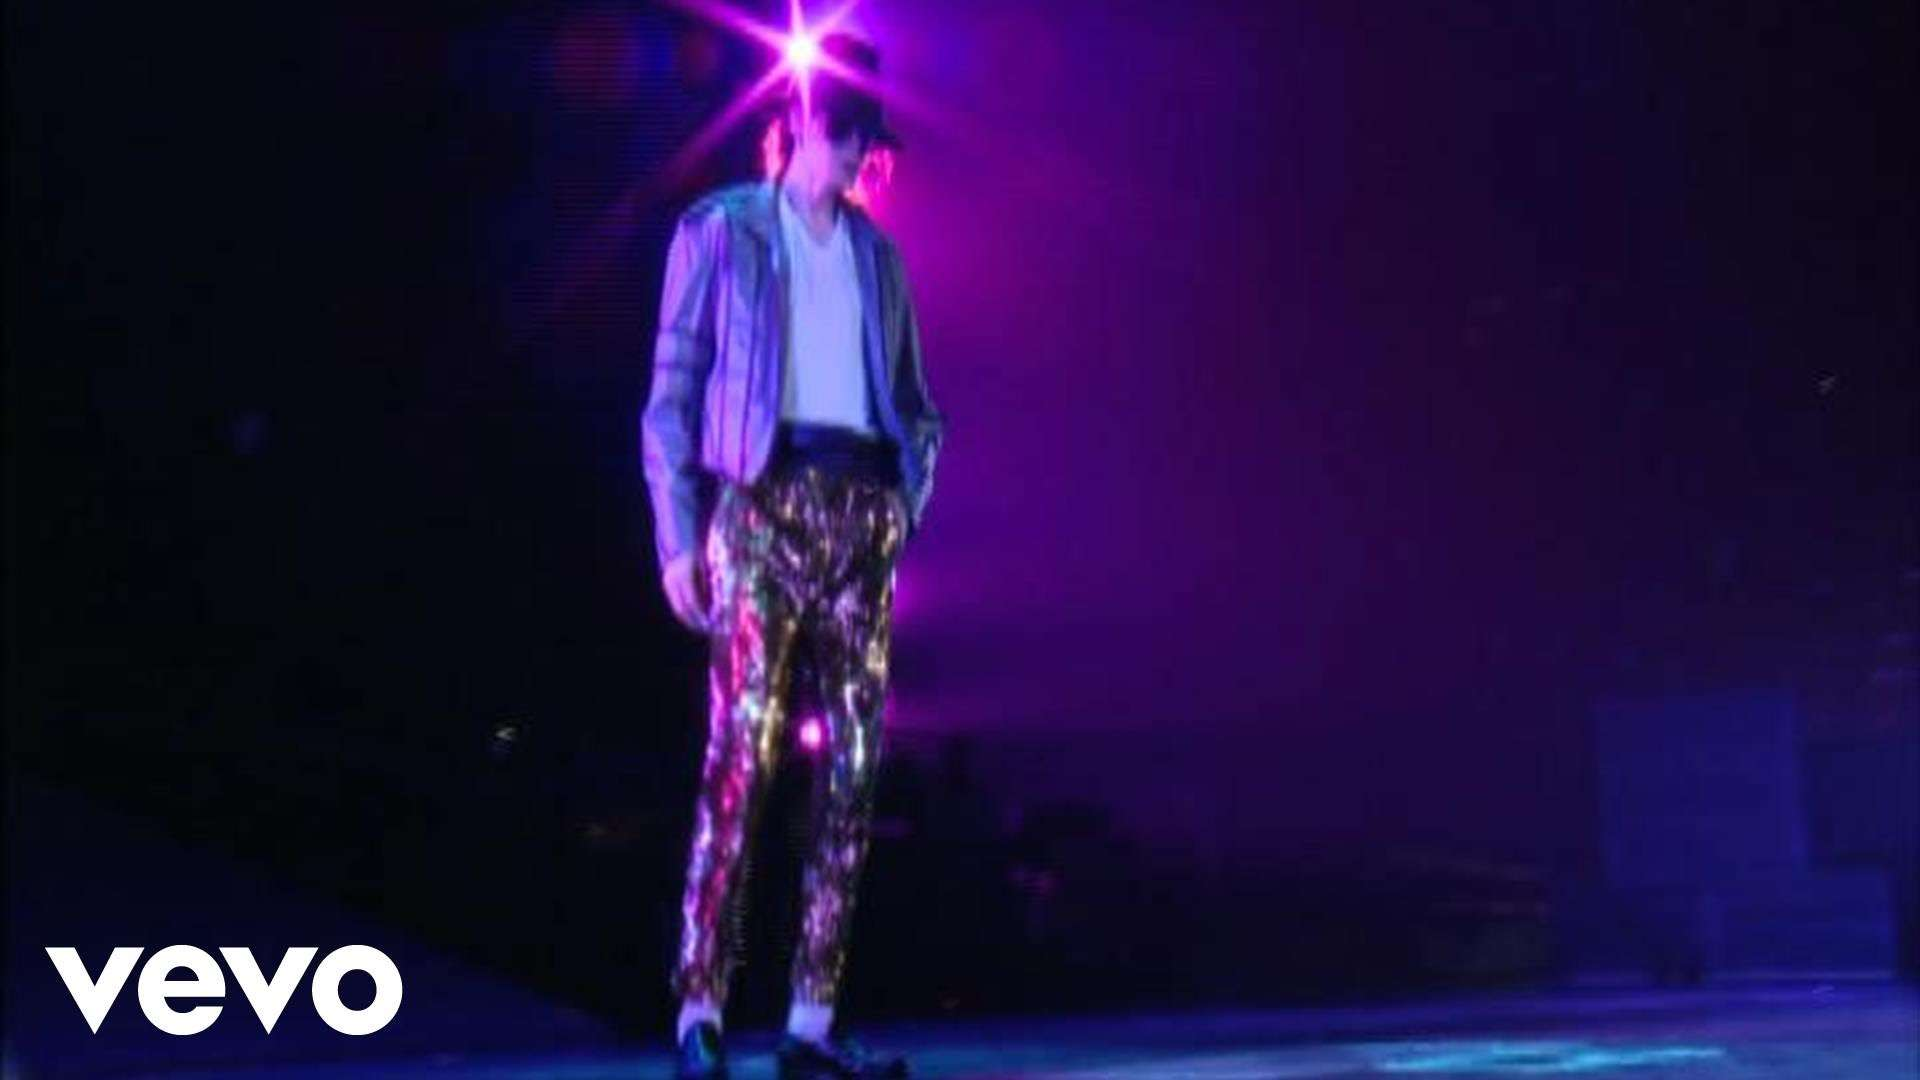 Michael Jackson - This Is It (Official Video) - YouTube